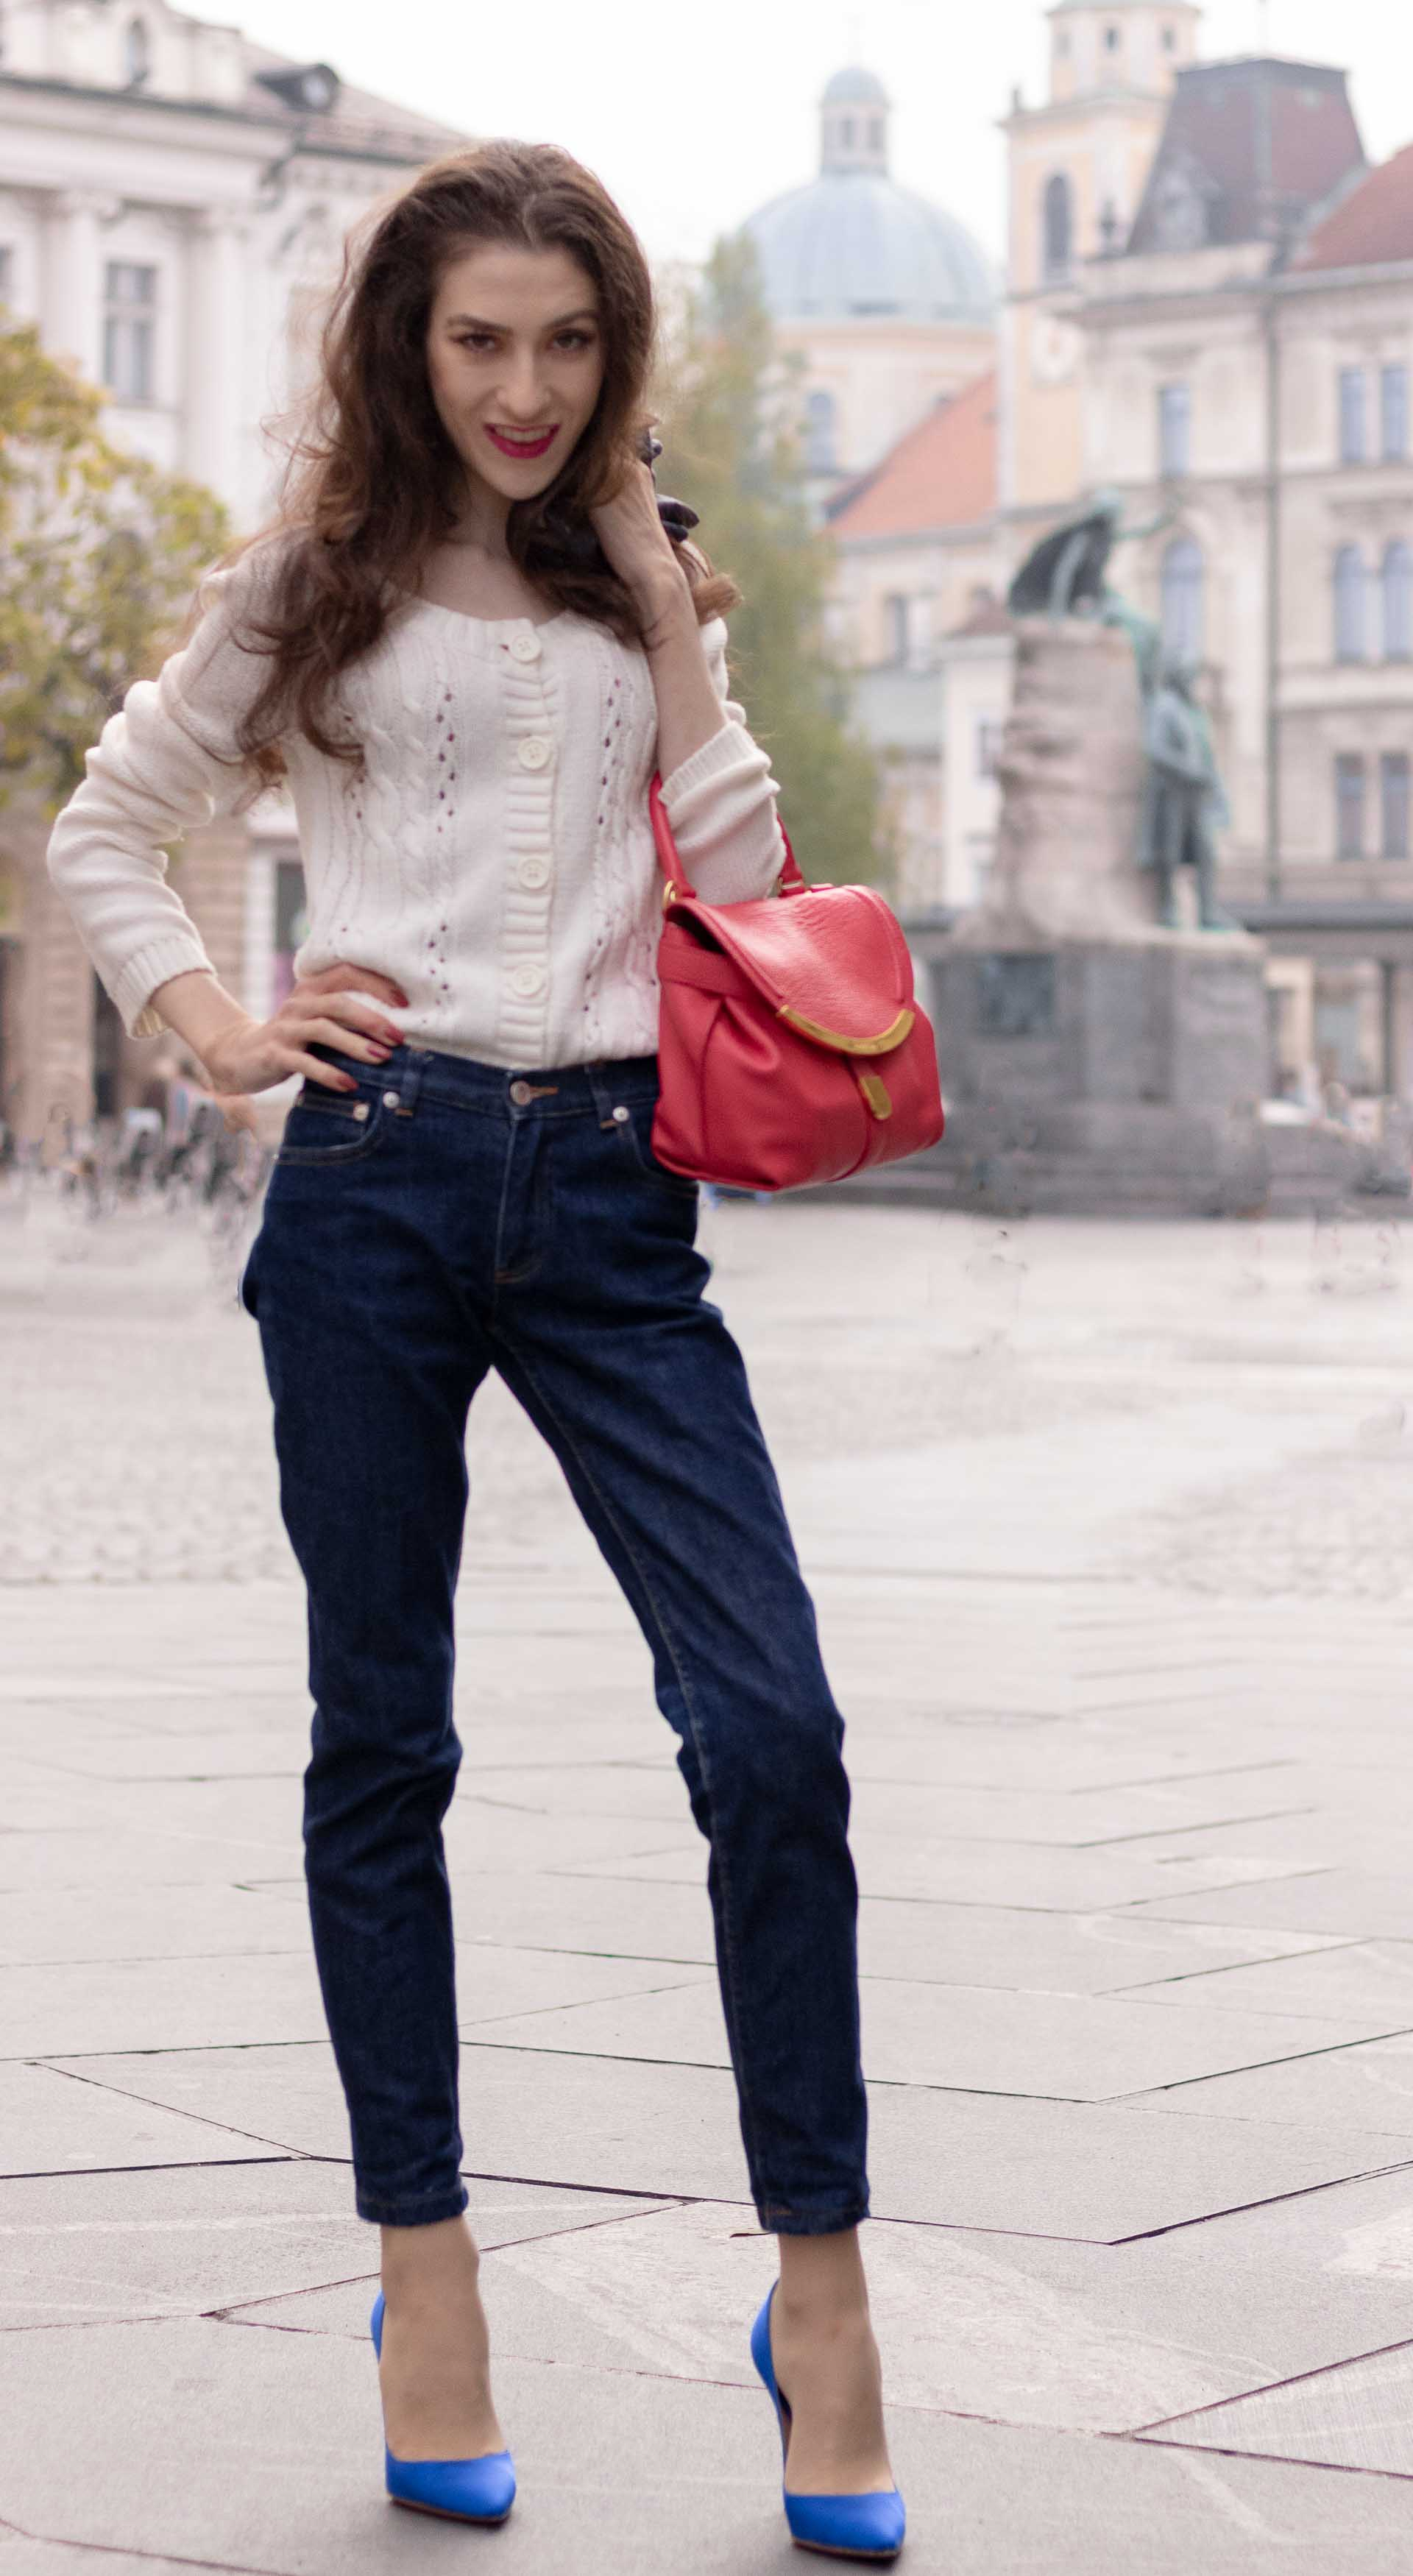 Beautiful Slovenian Fashion Blogger Veronika Lipar of Brunette from Wall dressed in white Mango cardigan tucked into dark blue denim jeans from a.p.c., blue Gianvito Rossi pumps, pink top handle bag on the street